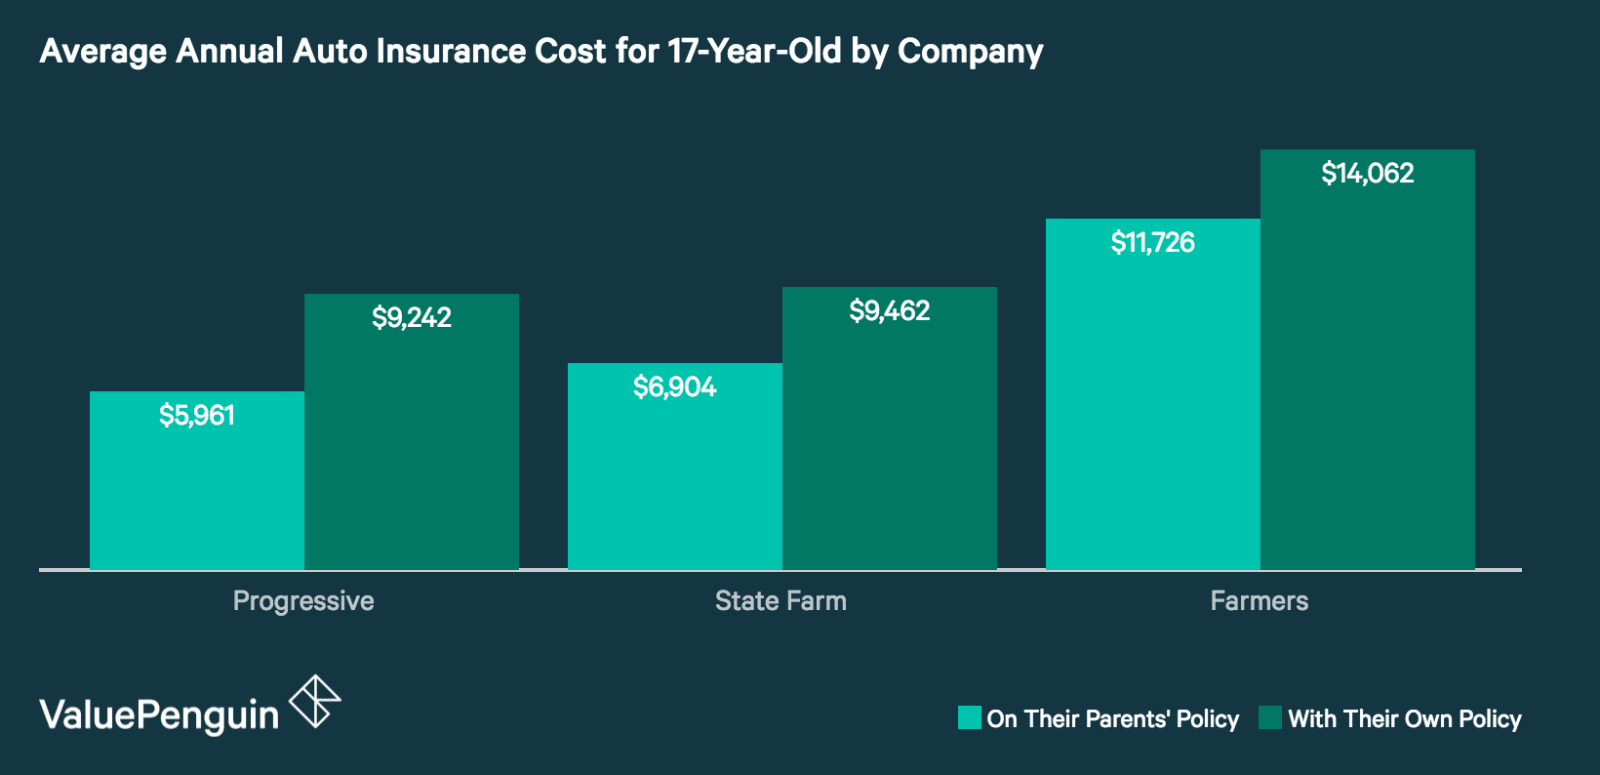 Company Comparison of Car Insurance Costs for 17-Year-Old Drivers